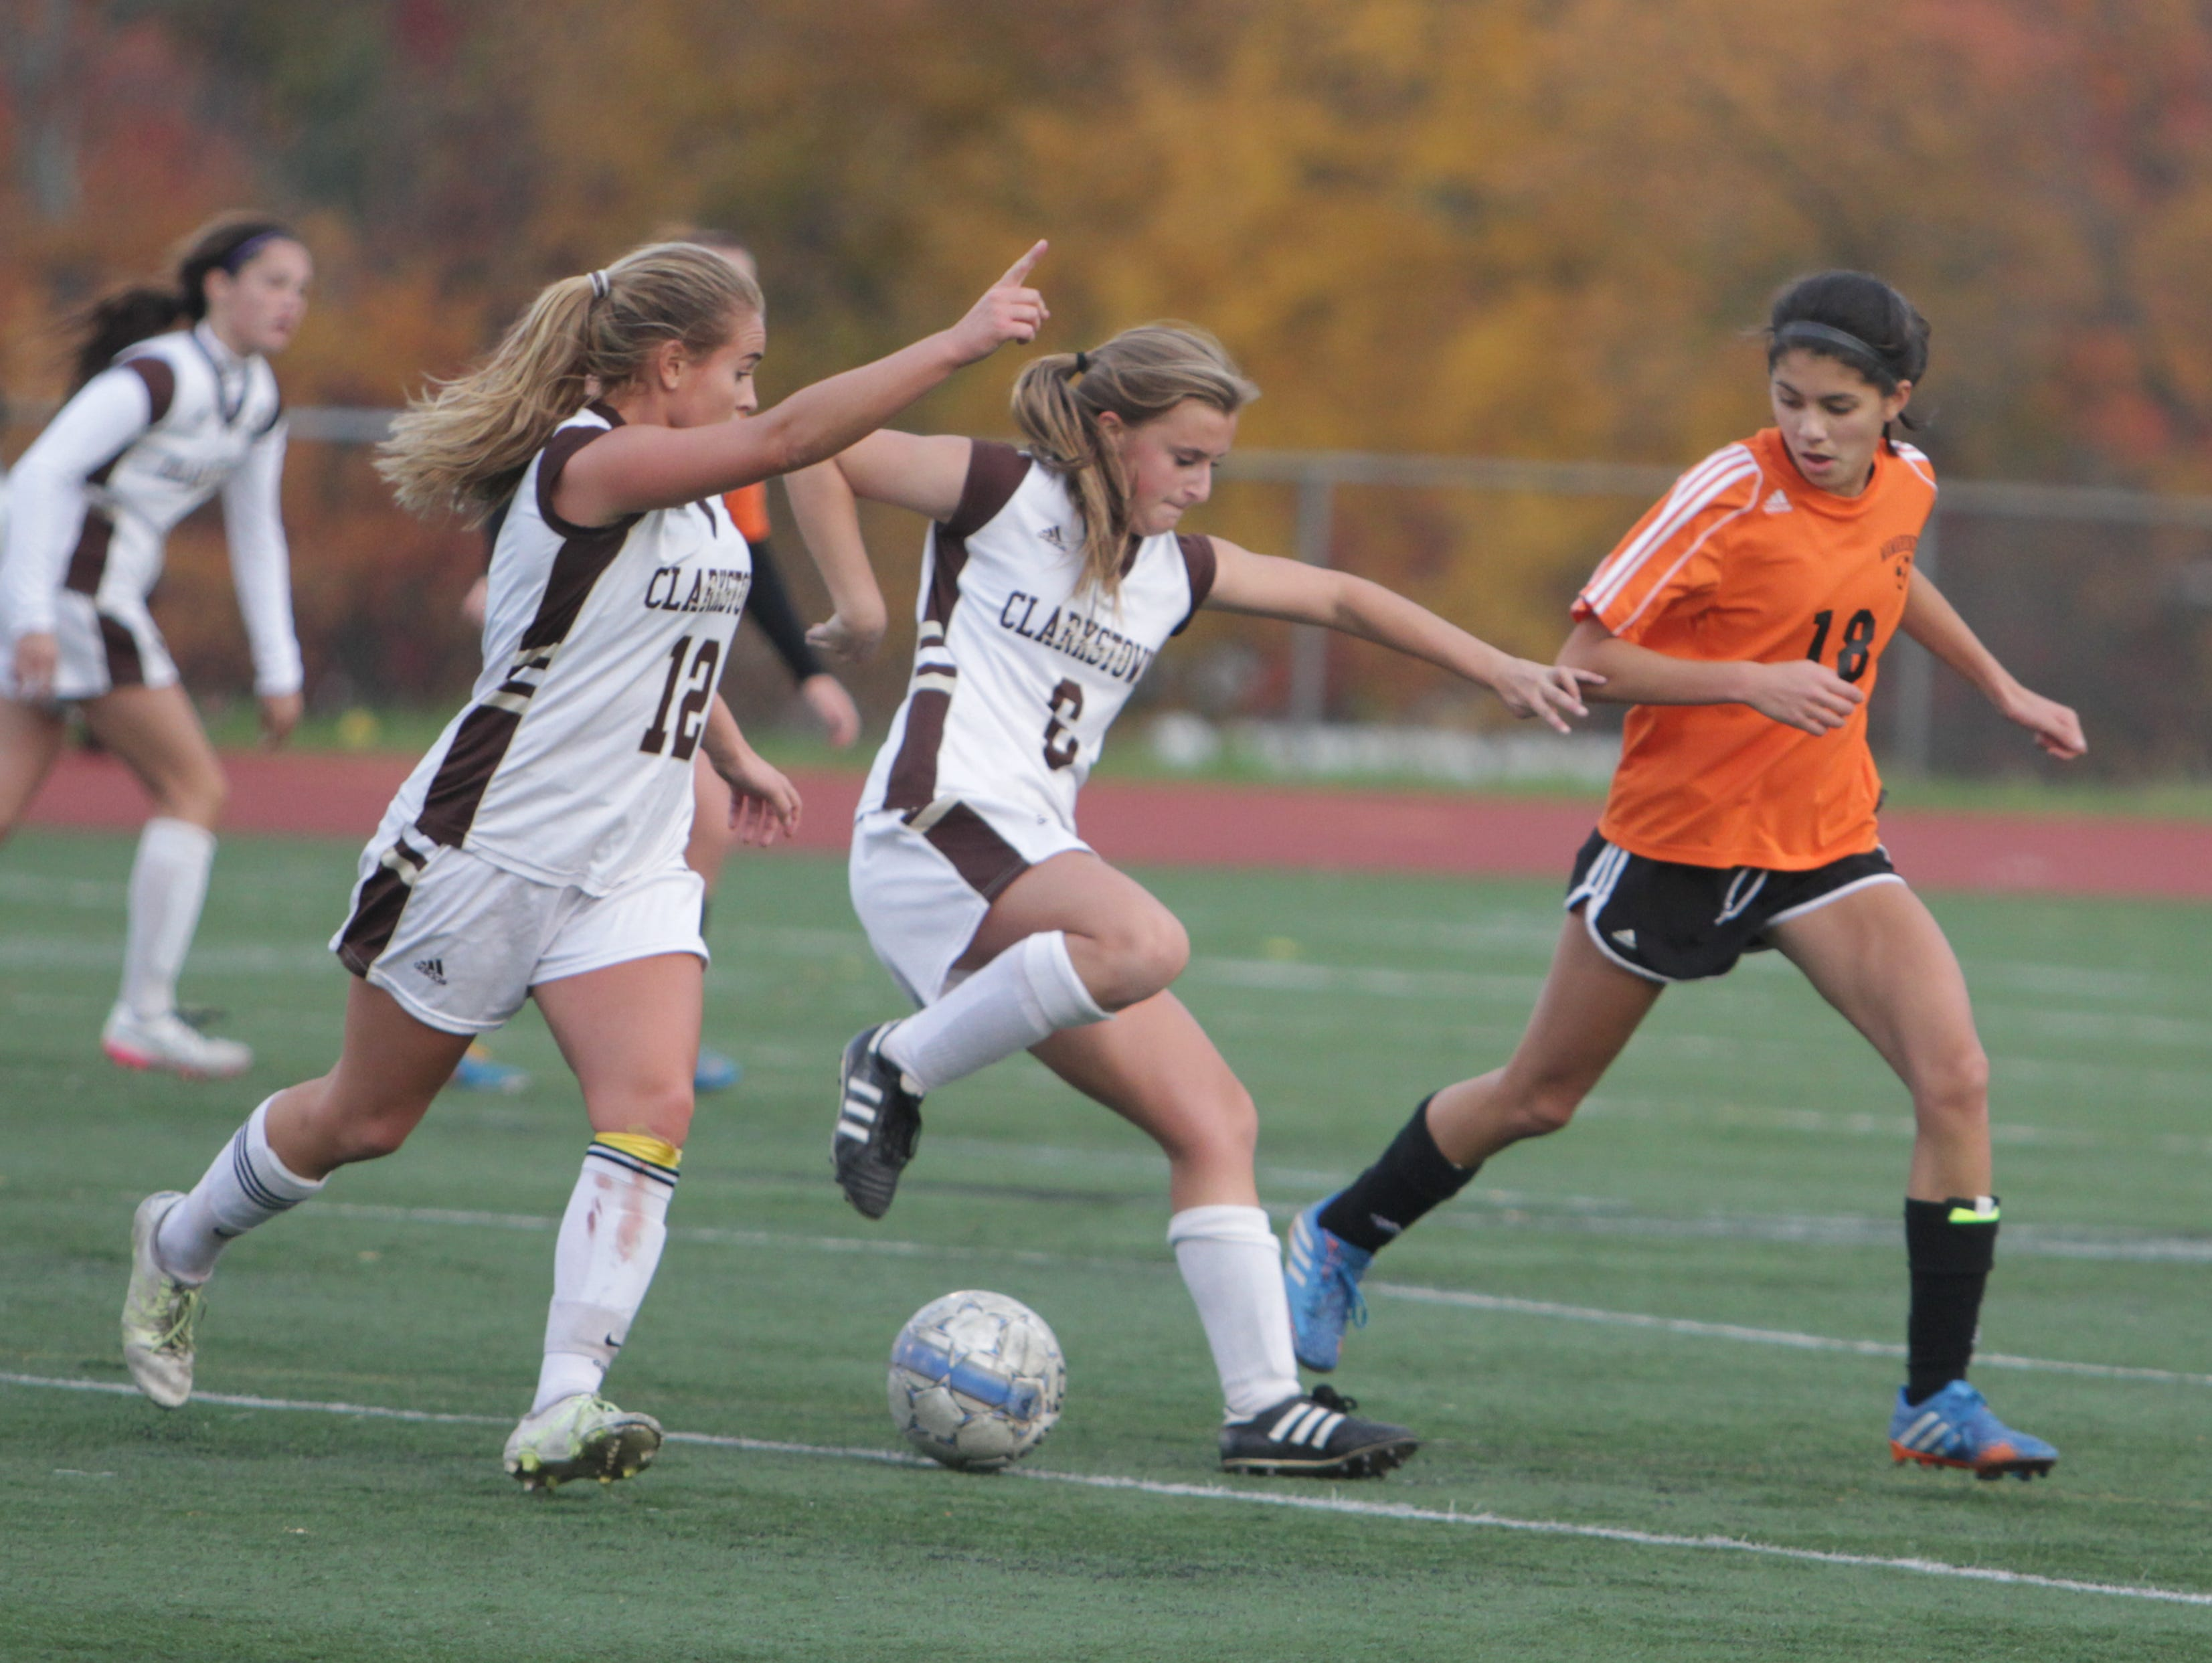 Clarkstown South's Angela Basile (middle) makes a move on Mamaroneck's Lauren Shpiz during a Section 1, Class AA quarterfinal game at Clarkstown South High School on Tuesday, October 27th, 2015. Clarkstown South won 1-0 in overtime.